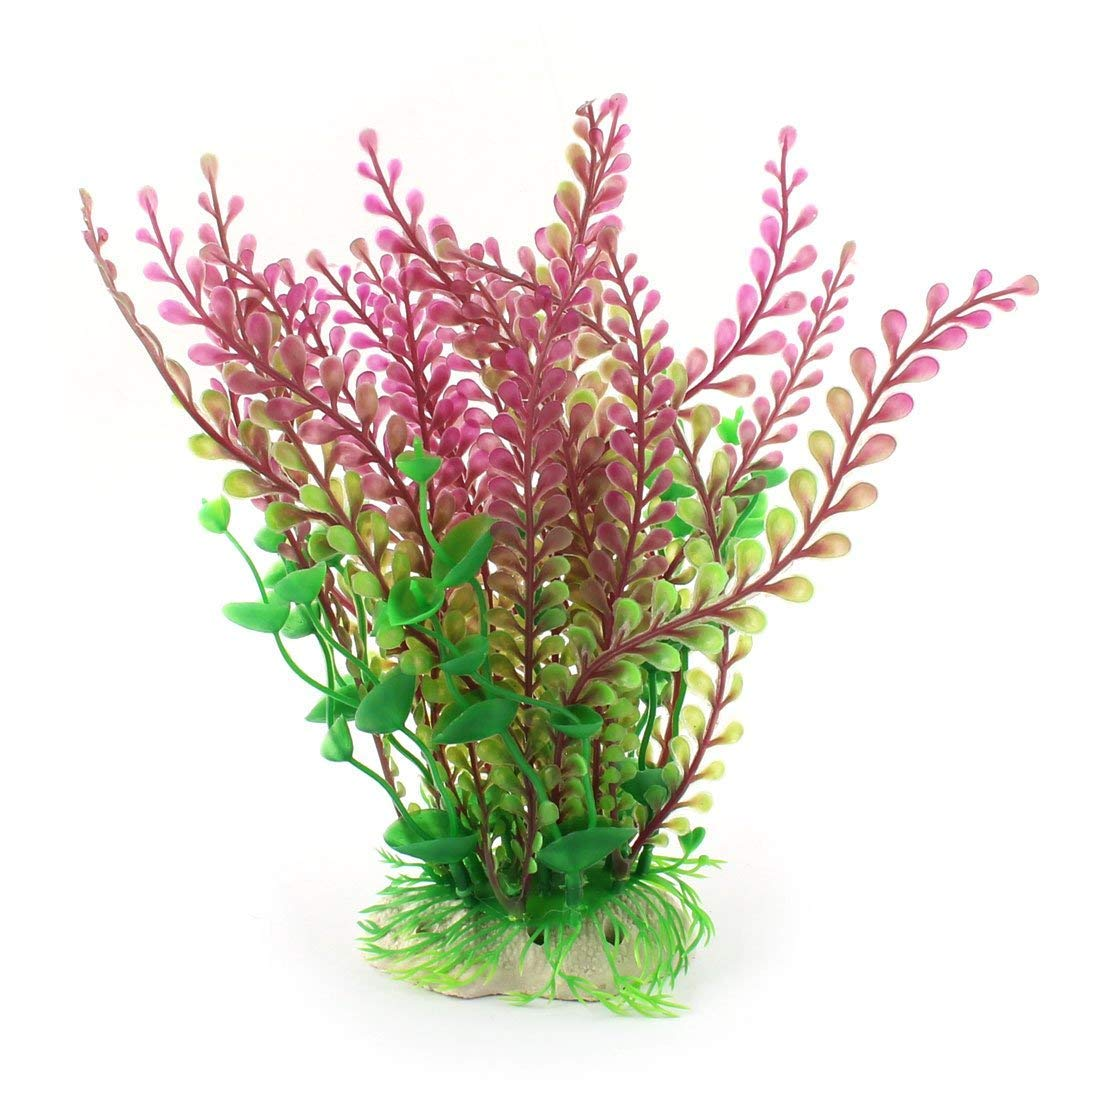 1Pc Silicone Manmade Fish Tank Water Landscape Plant Grass Yellow